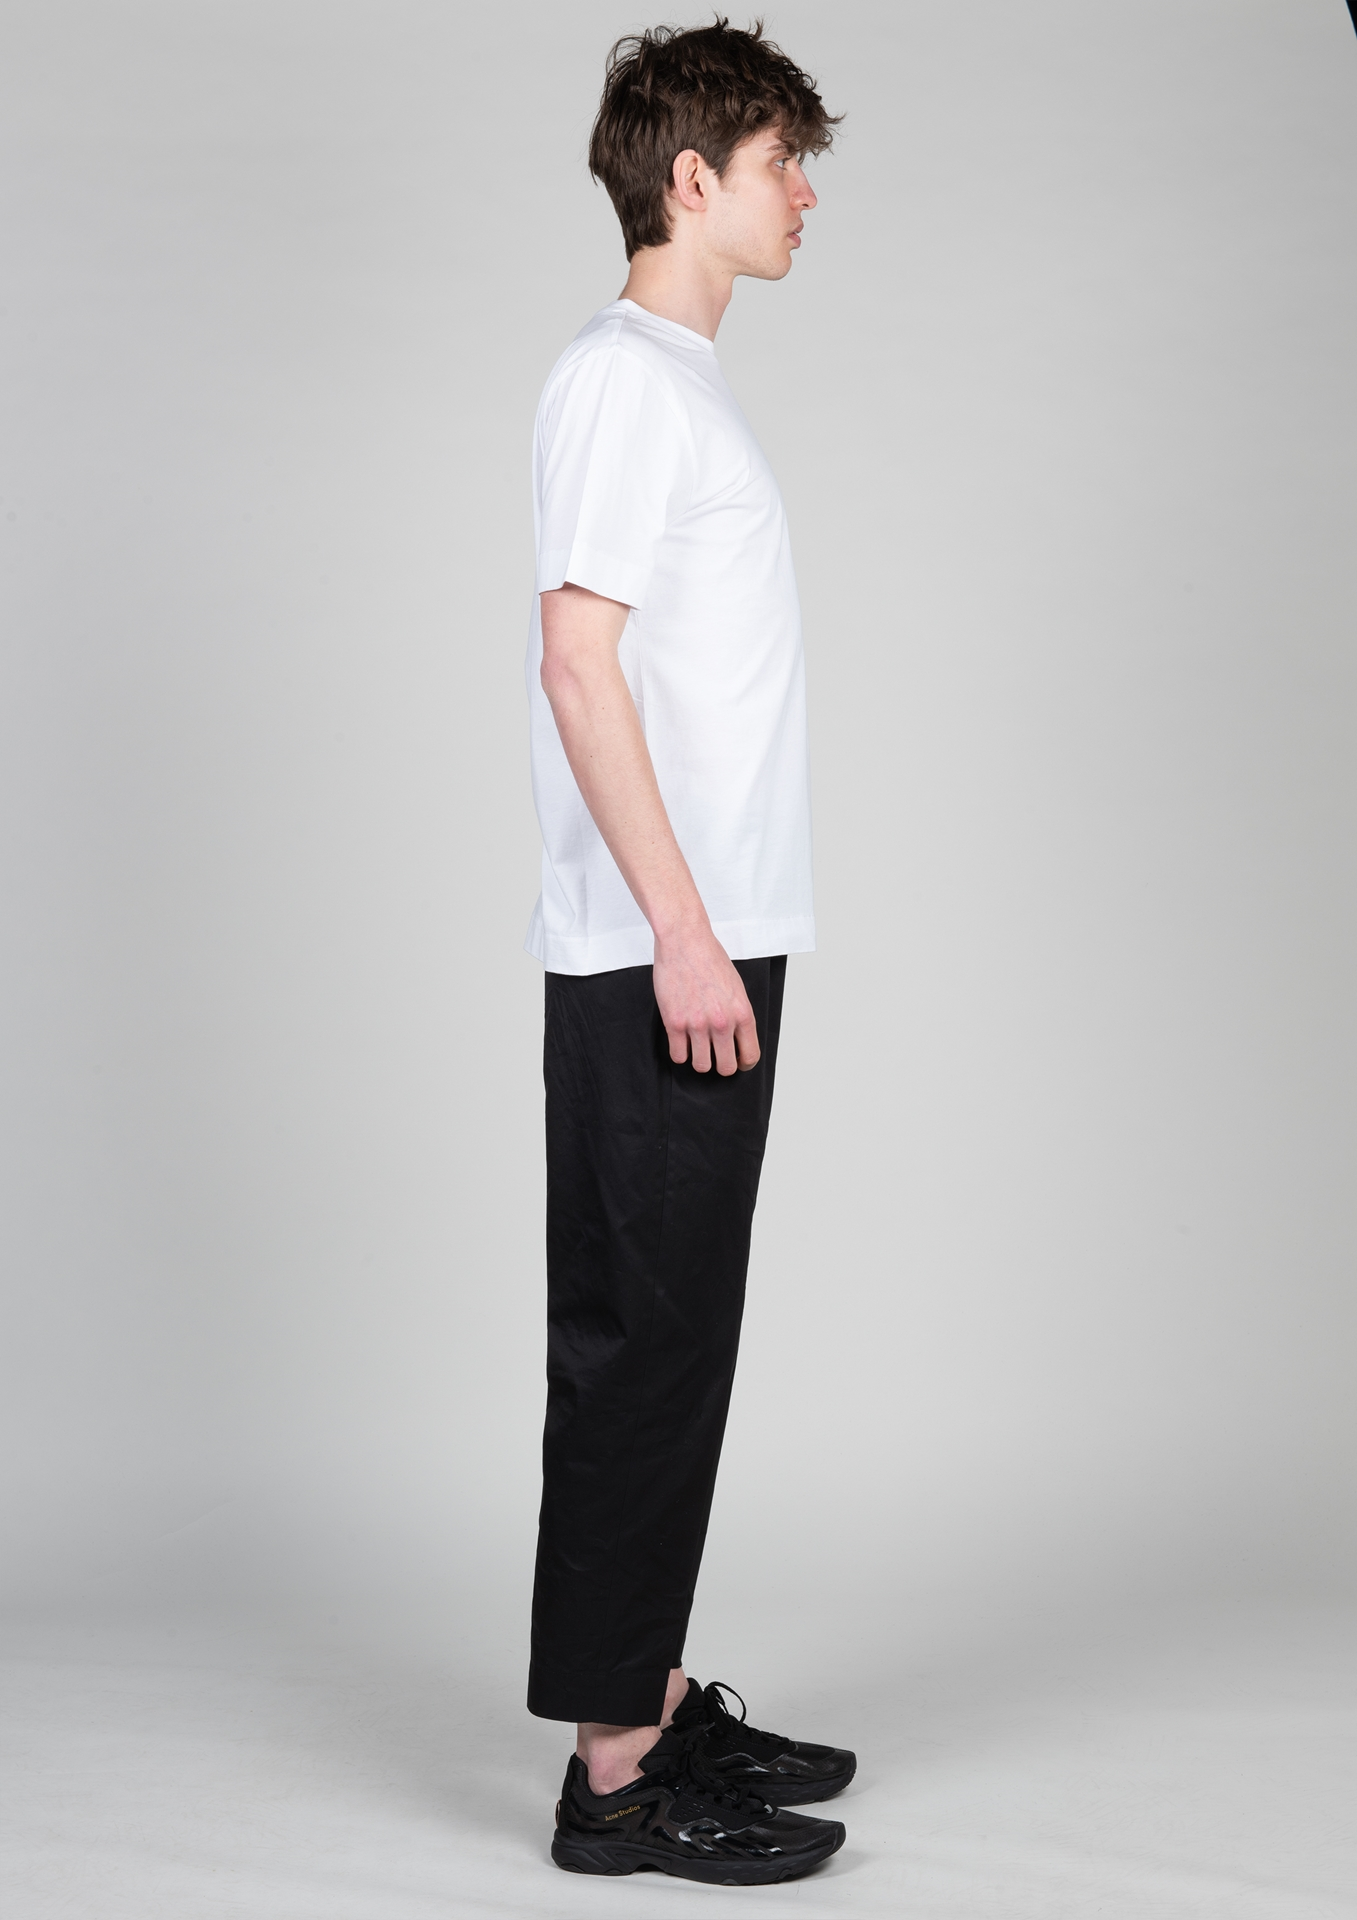 H T-Shirt AAMTS0218 Größe: M Farbe: white